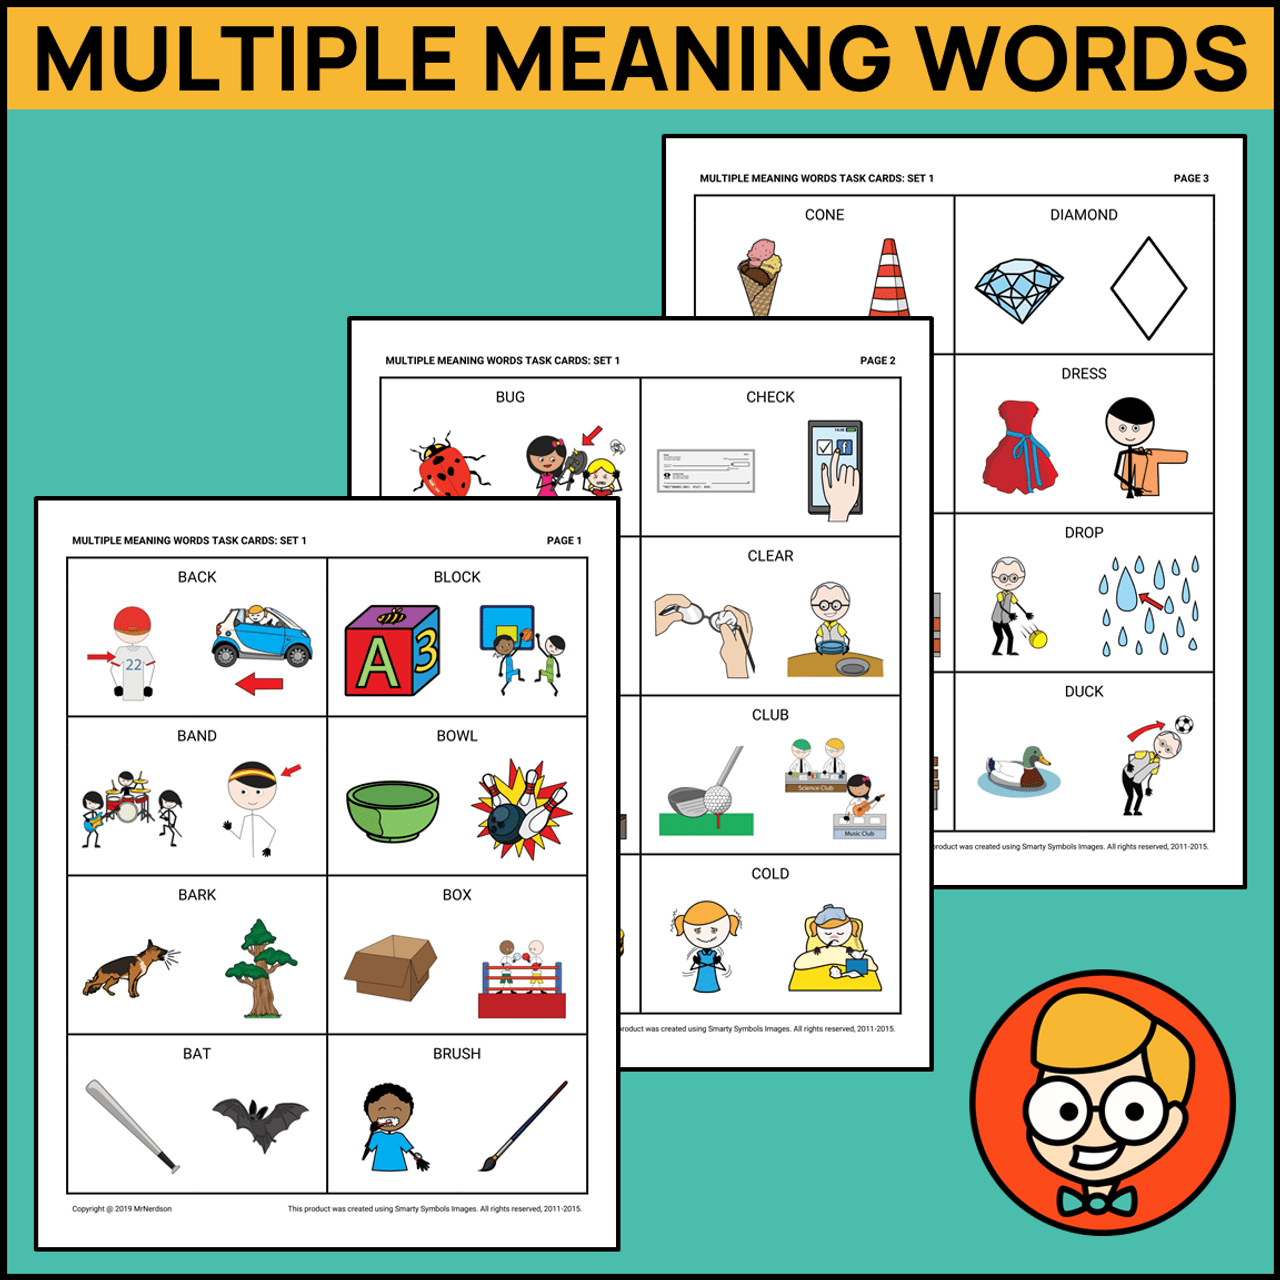 small resolution of Multiple Meaning Words Task Cards - Set 1 - Amped Up Learning